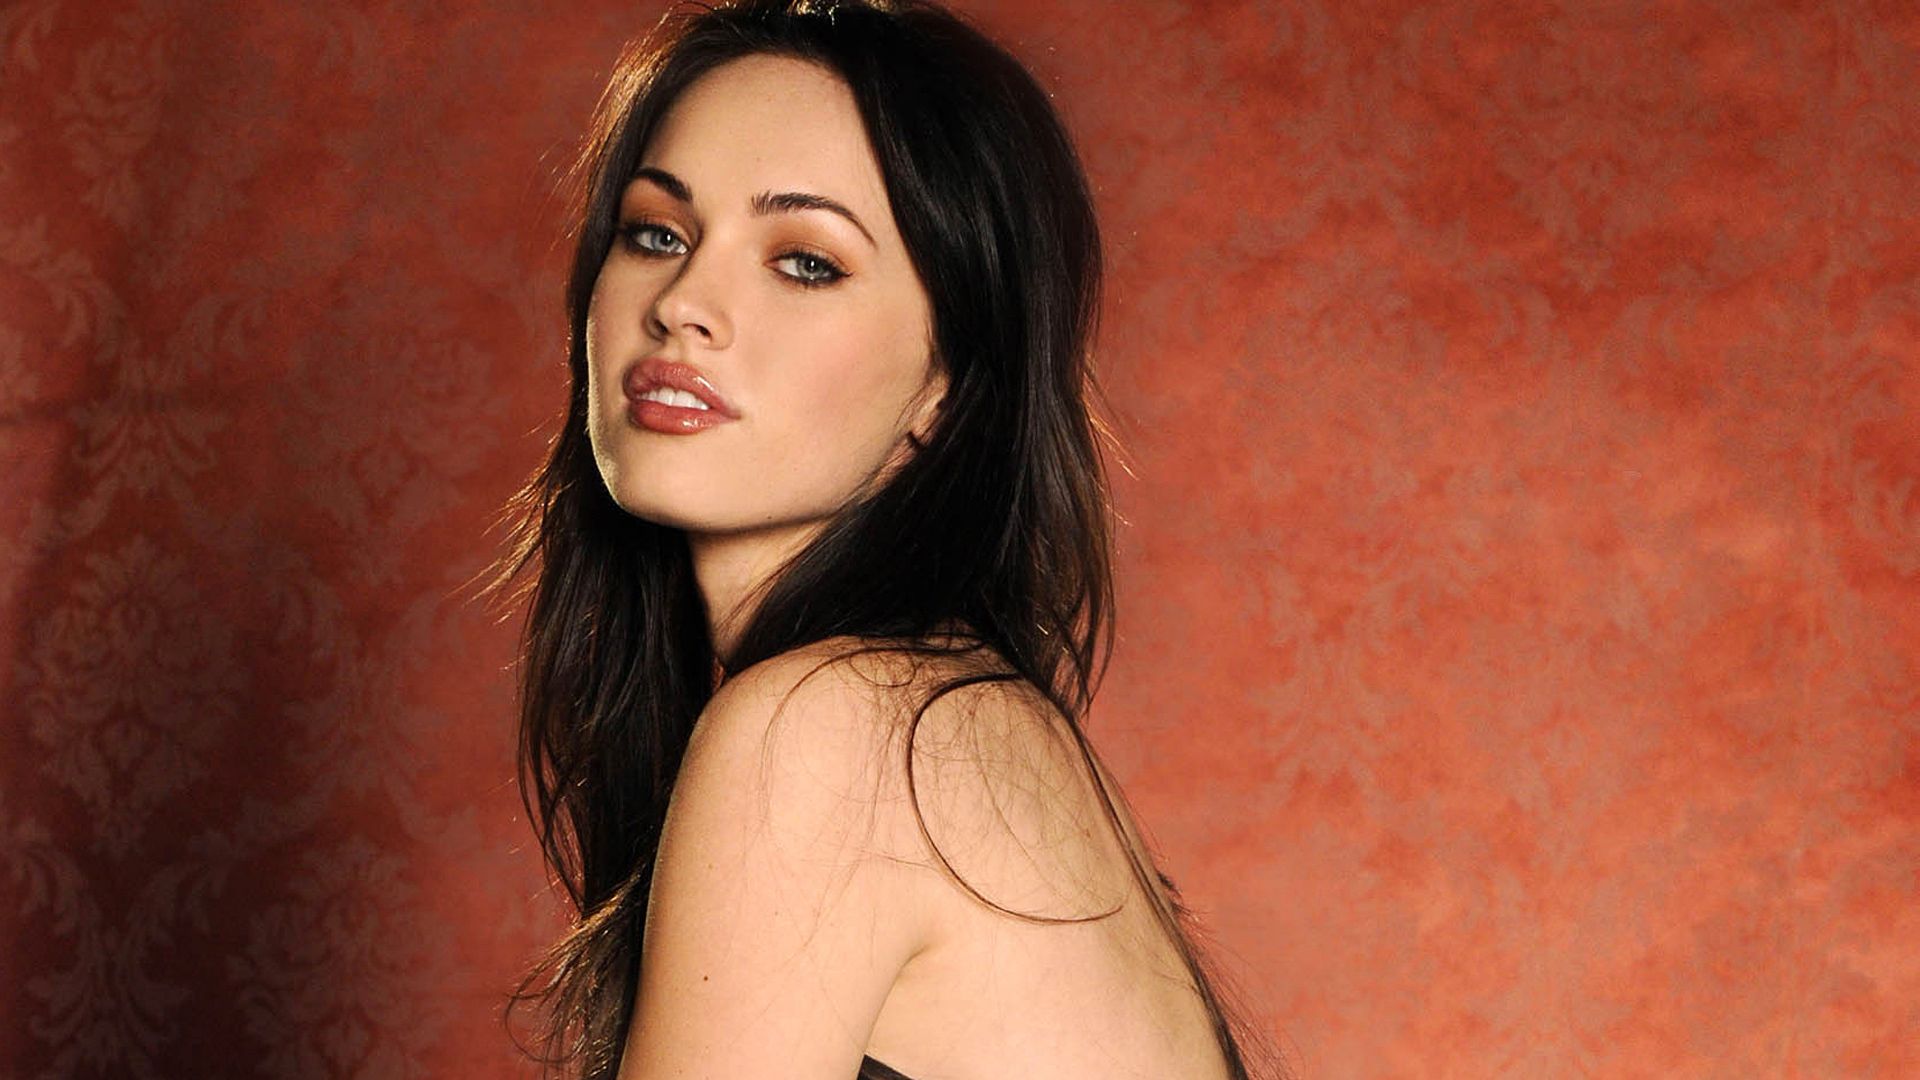 Megan Fox 31 wallpaper